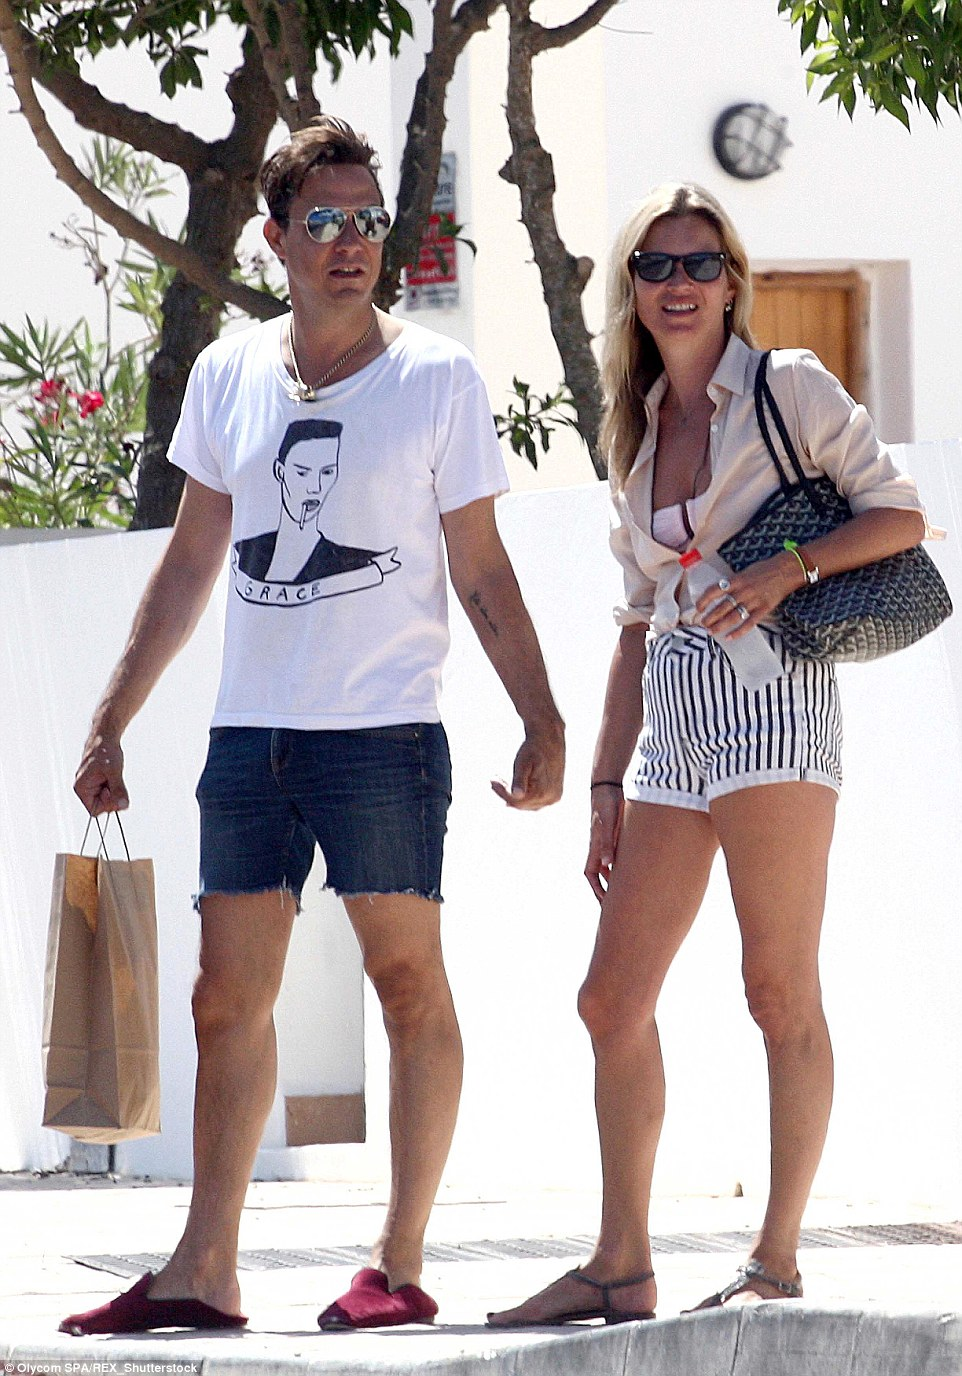 Kate Moss and husband Jamie Hince walk hand in hand in Formentera, the smaller, even more exclusive neighbouring island to Ibiza